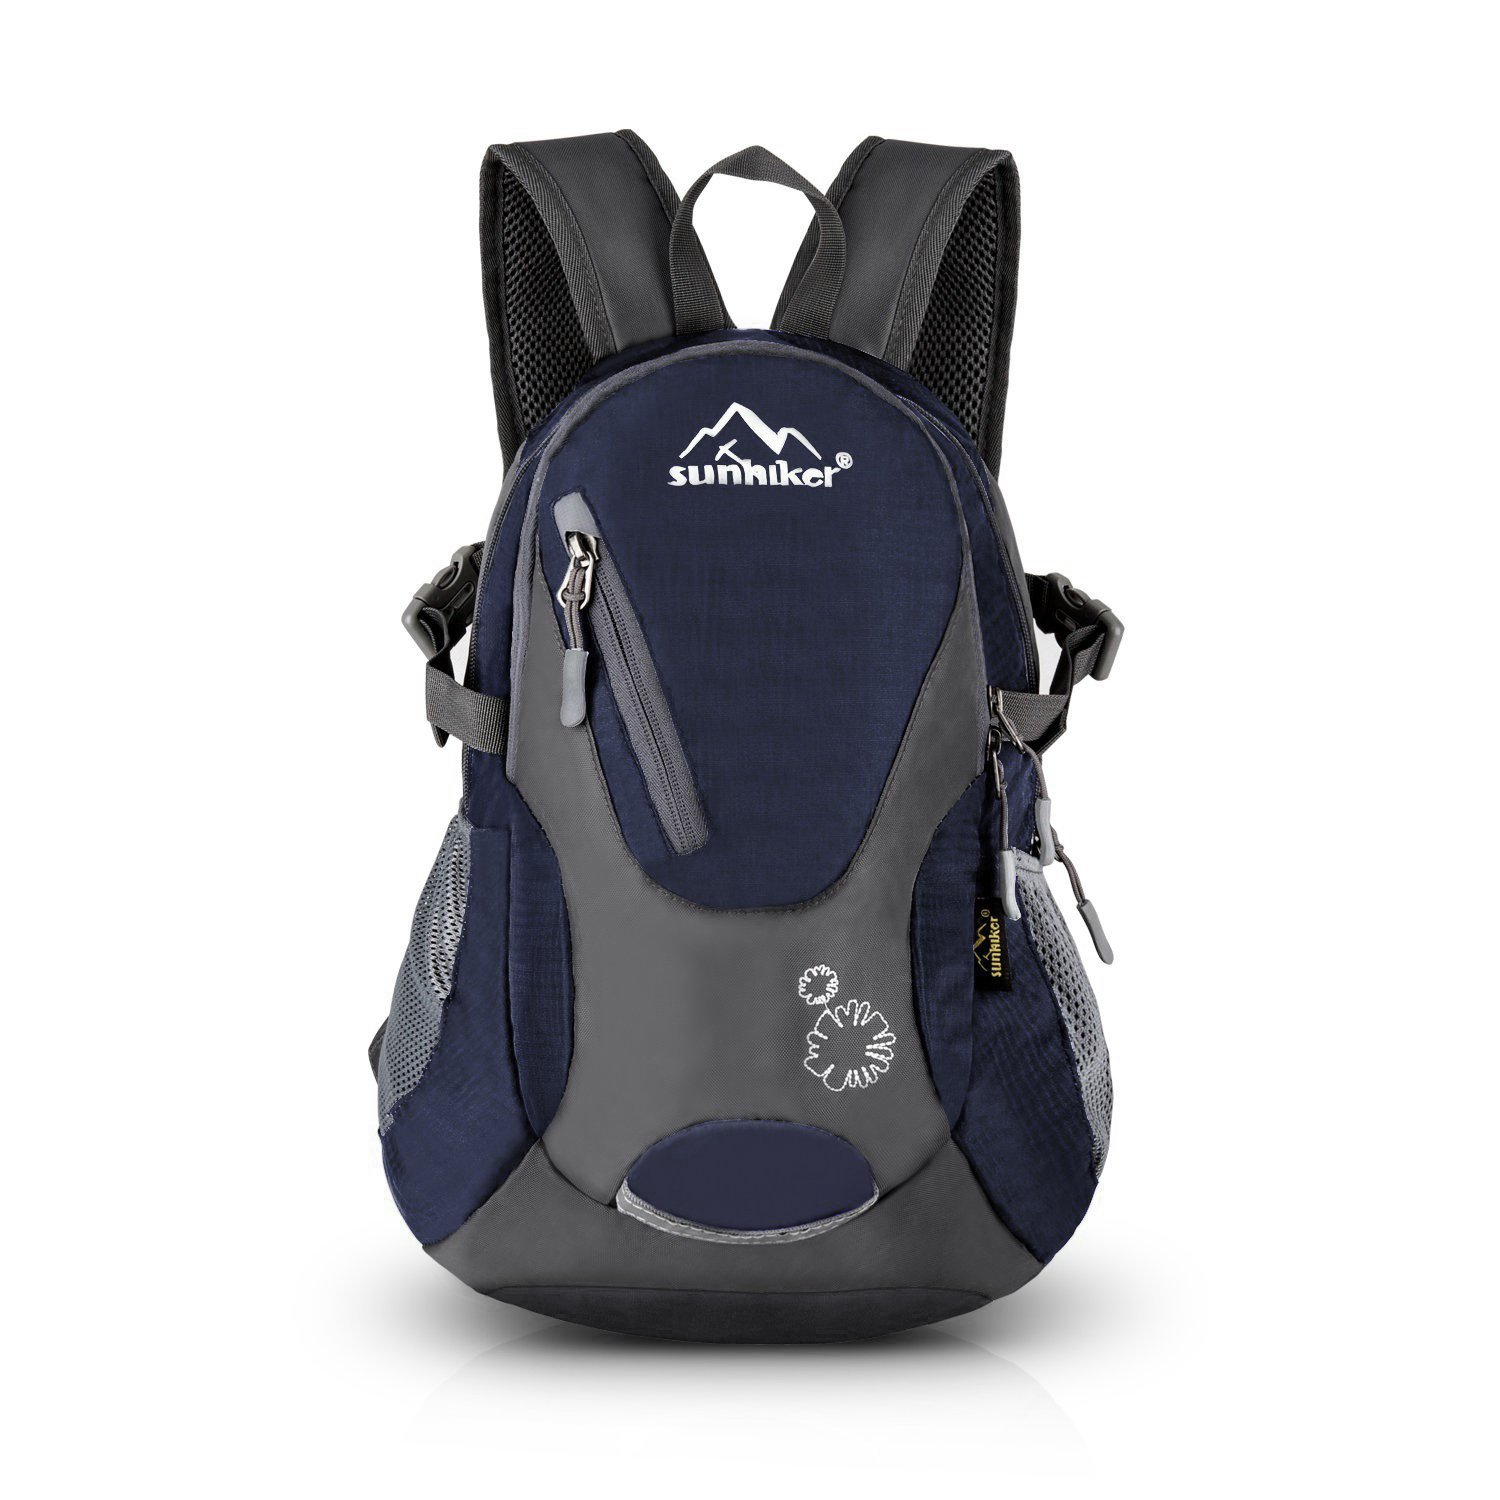 Sunhiker Cycling Hiking Backpack Water Resistant Travel Backpack Lightweight Small Daypack M0714 (Dark Blue) by Sunhiker